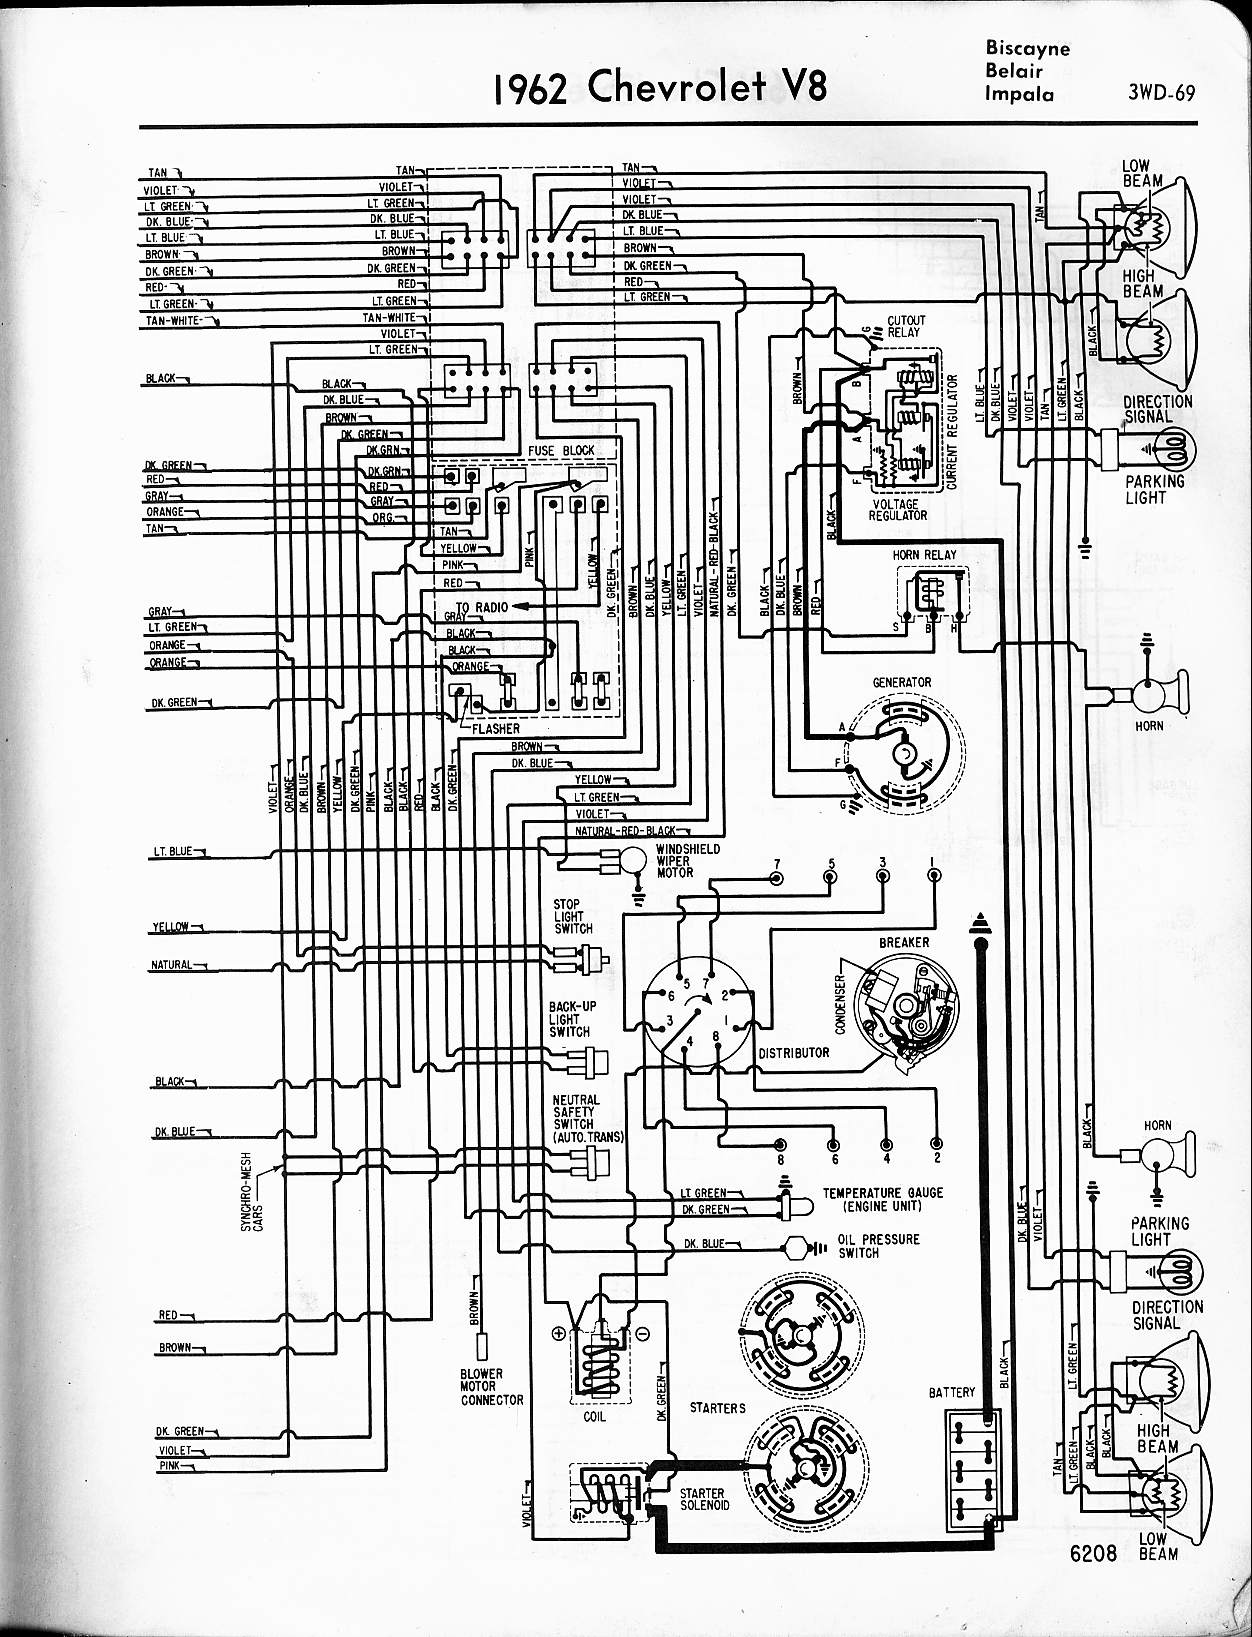 MWireChev62_3WD 069 1963 impala engine wiring diagram 1963 chevy nova wiring diagram 2011 impala wiring schematic at webbmarketing.co